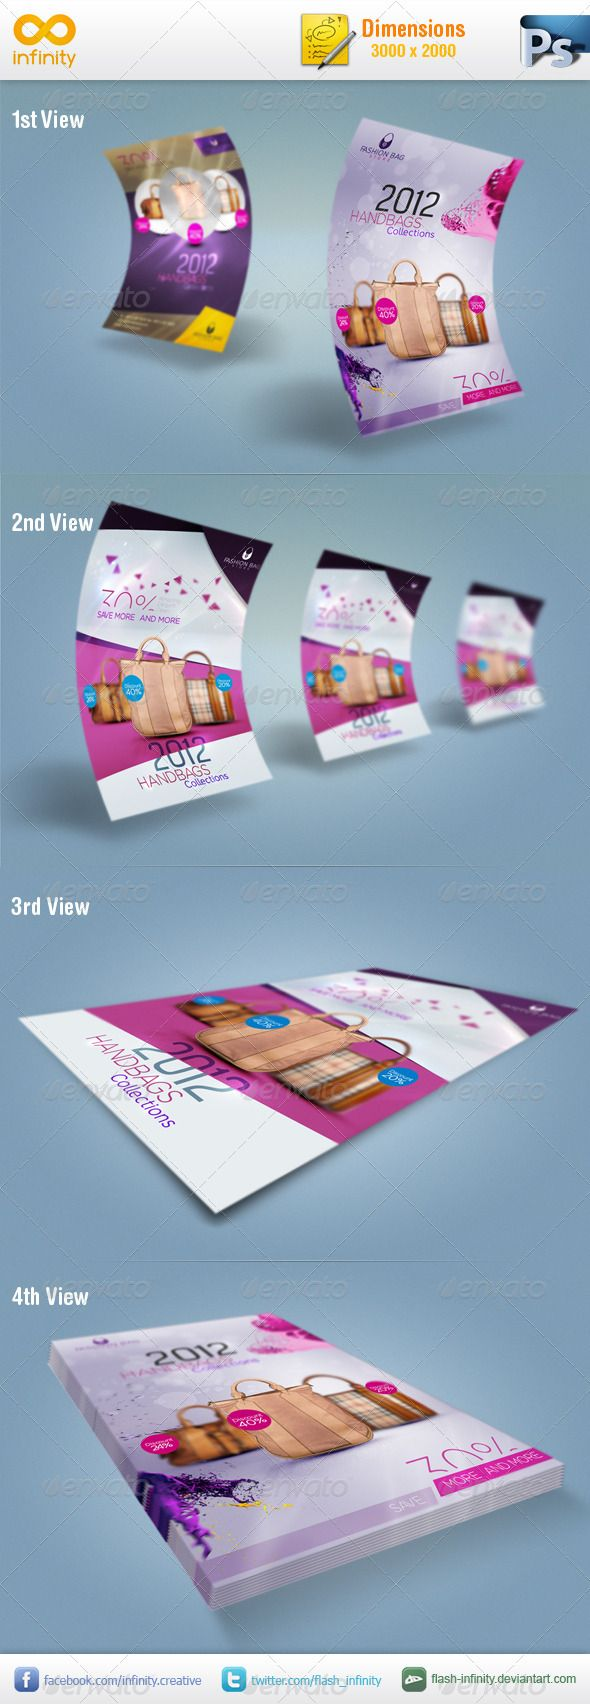 Flyer Mockup  #GraphicRiver         Flyer Mockup with 4 views   Dimensions: 3000×2000. Easily changing the images, help file included.    Thanks to REDFLOOD     for using his file for the preview. REDFLOOD's flyer can be found here: graphicriver /item/fashion-bag-3-unique-flayer/2968378  Don't forget to rate this item.      Created: 13March13 GraphicsFilesIncluded: PhotoshopPSD HighResolution: Yes Layered: Yes MinimumAdobeCSVersion: CS5 PixelDimensions: 3000x2000 PrintDimensions: 24.5x34.5 Tags: flyer #flyermockup #infinity #infinitymockup #mockup #perfectflyermockup